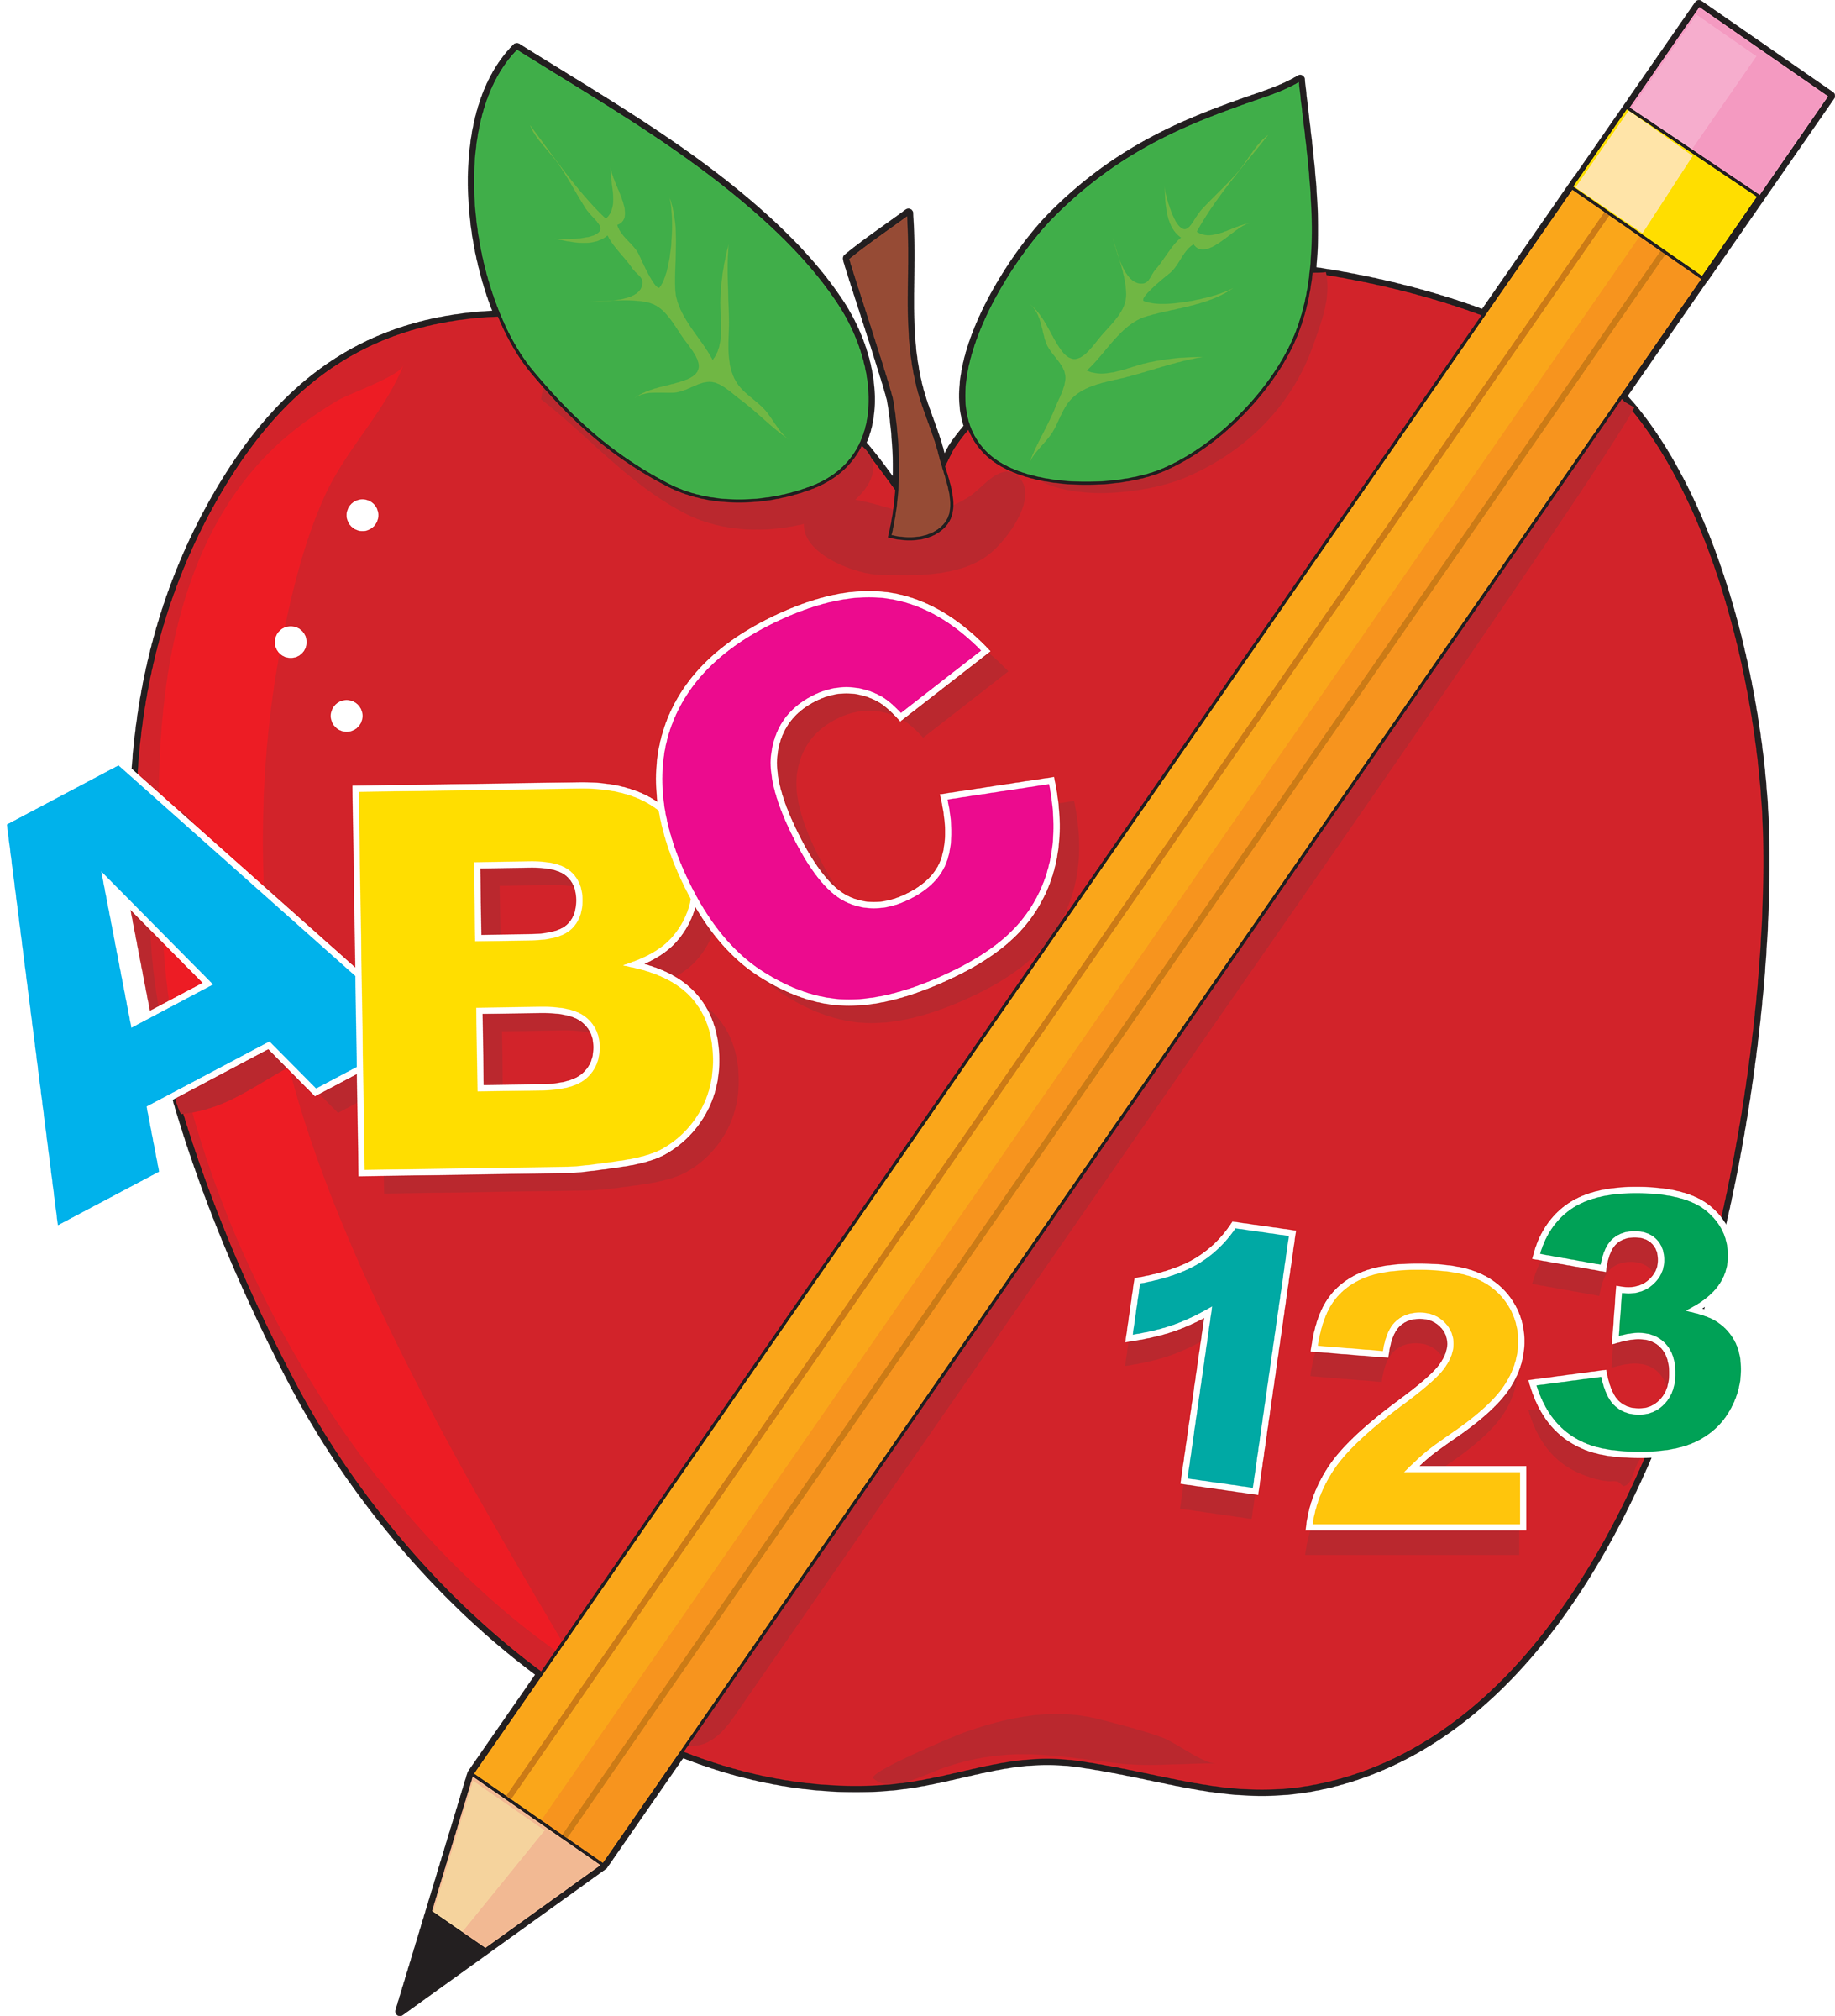 Abc blocks abc clipart 2